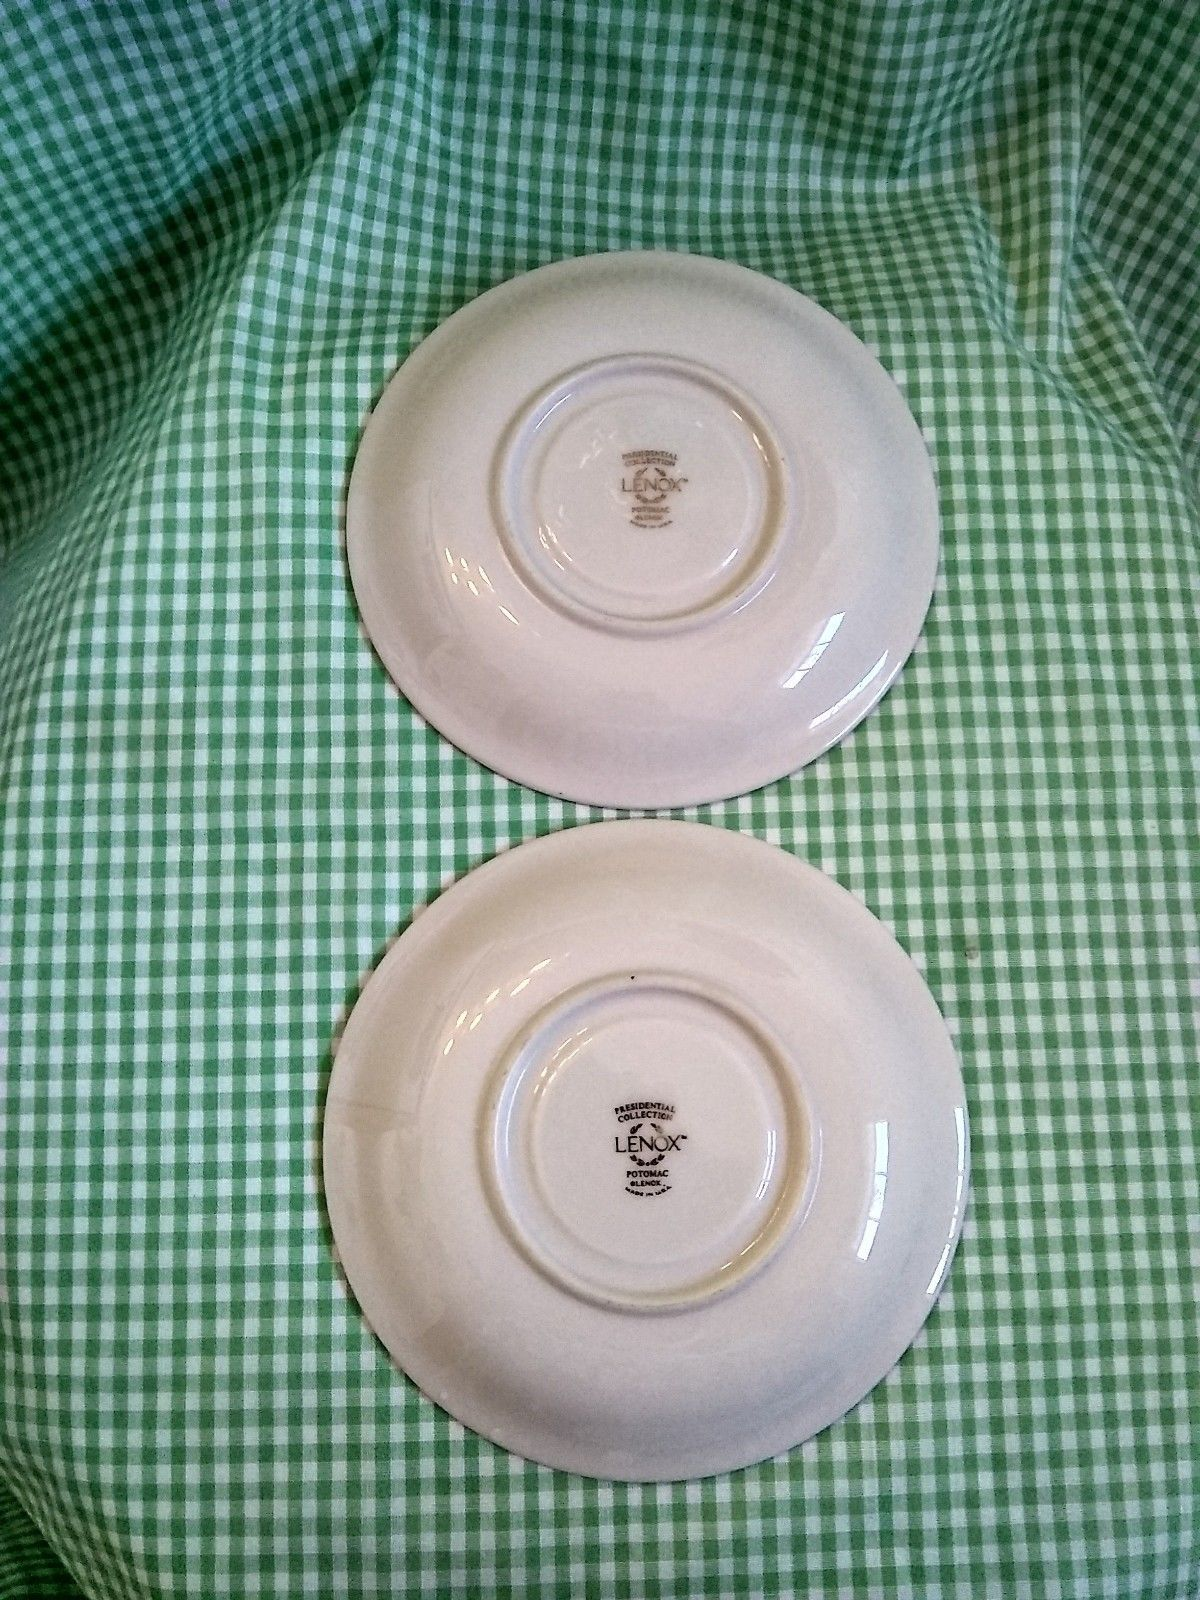 2 Lenox Potomac Saucers Presidential Collection Free US Shipping